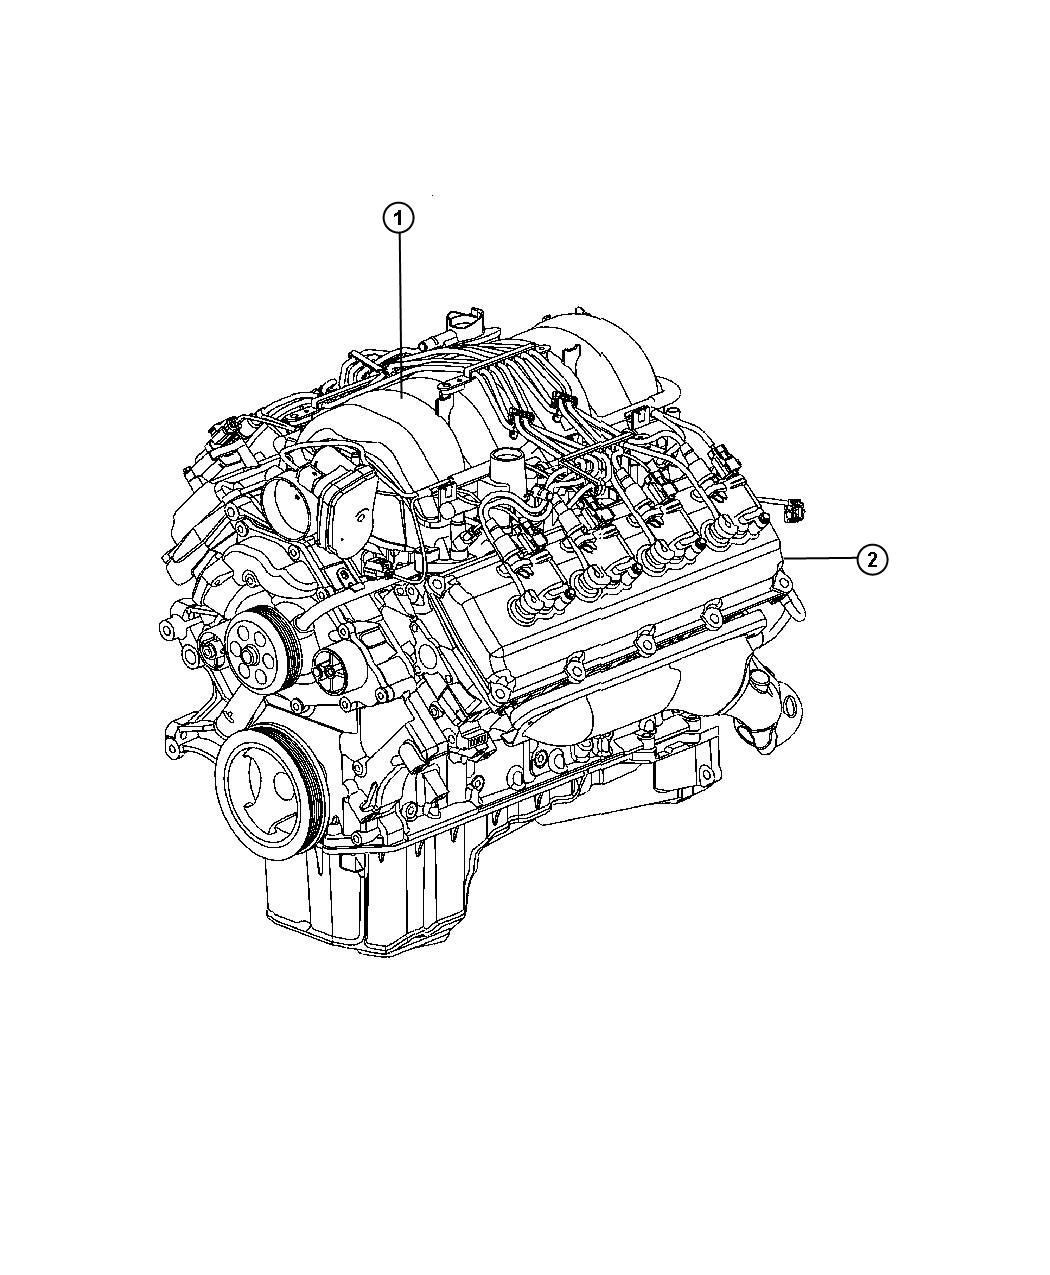 Dodge Durango Engine Long Block Remanufactured